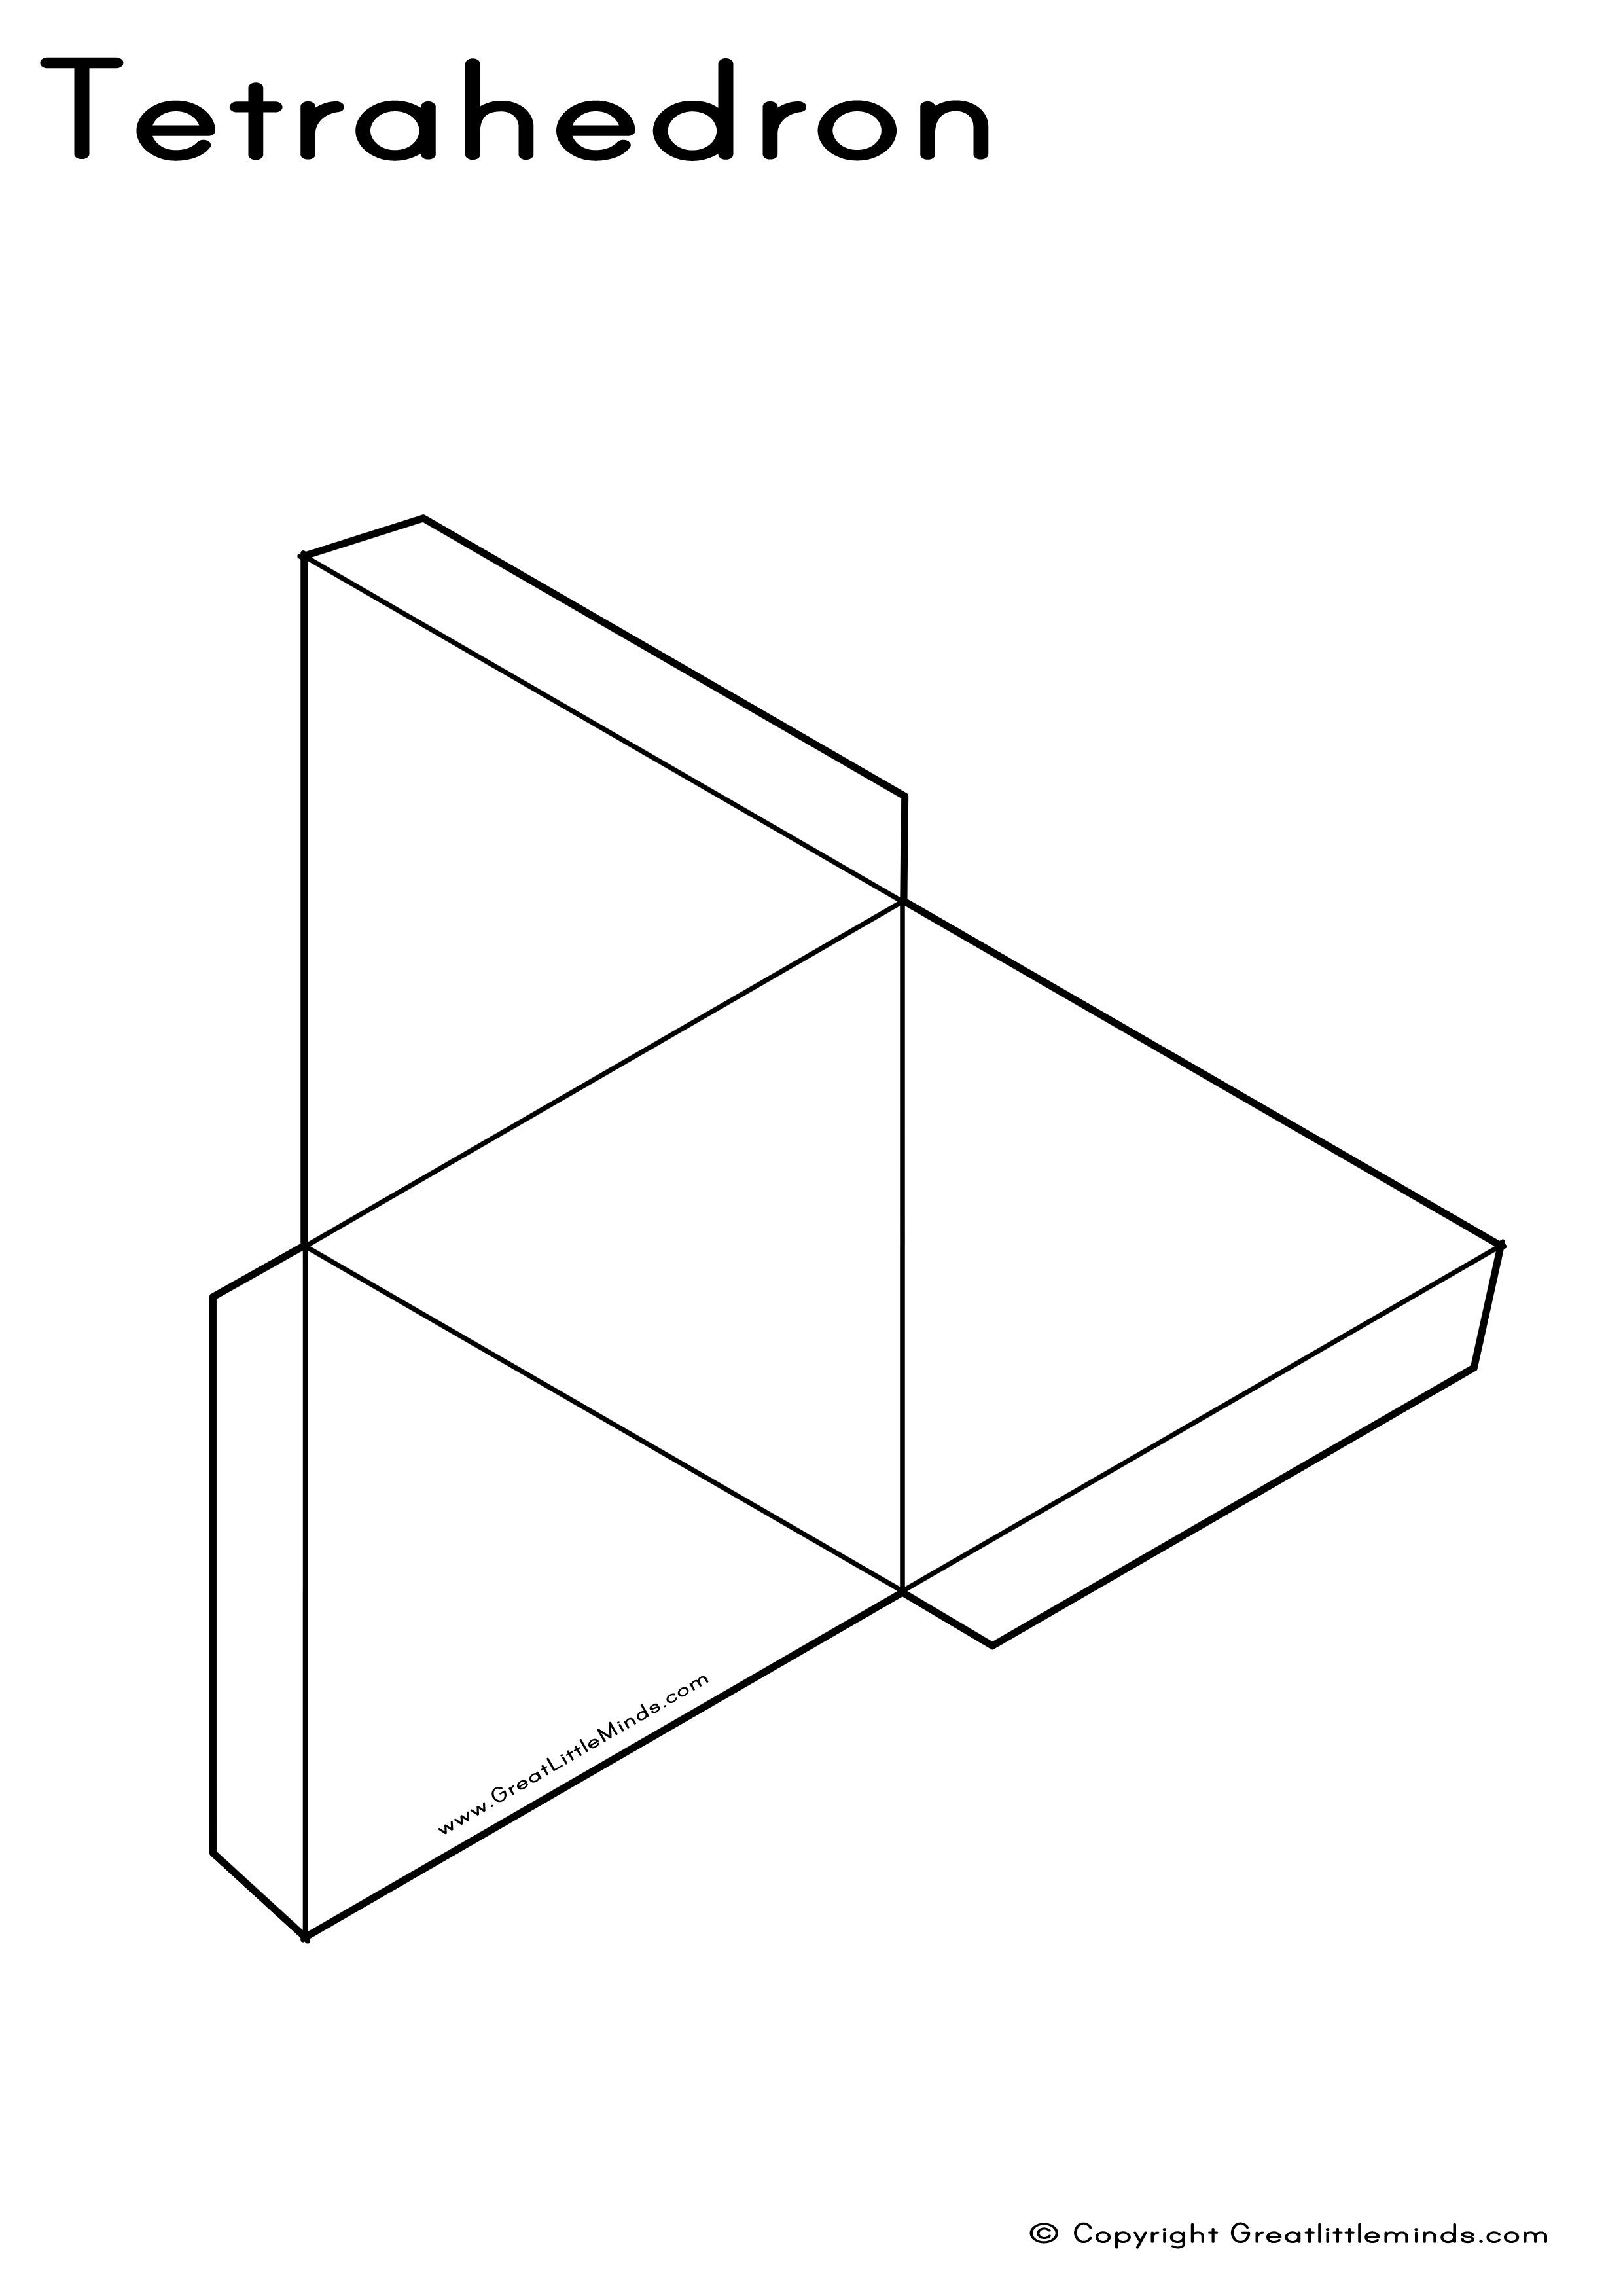 geometry net templates - printable 3d shape templates images